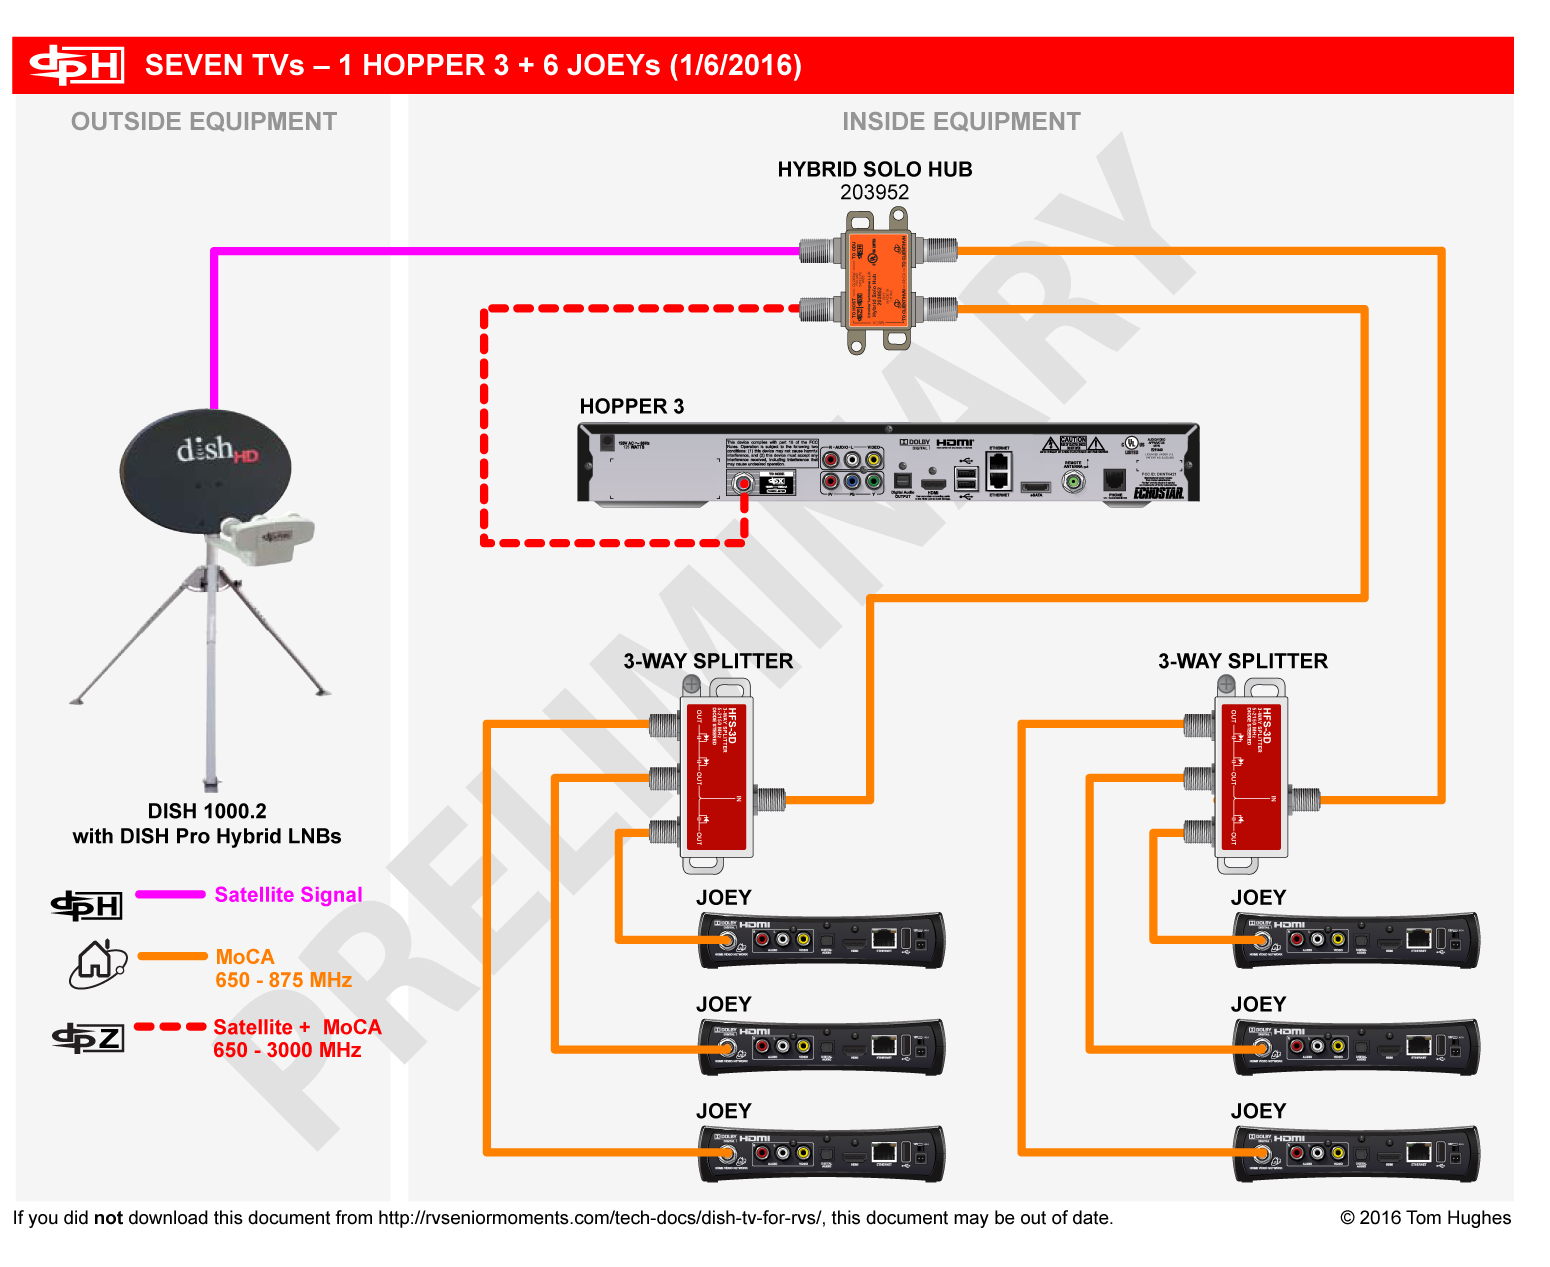 Dish Receiver Wiring Diagram also 1157270 Dish Vip222k Check My Planned Install Please additionally Receivers Vip 722 Hddvr besides Dish work Switches furthermore Directv Basic Wiring Diagram Get Free Image About. on dish network receiver installation diagrams